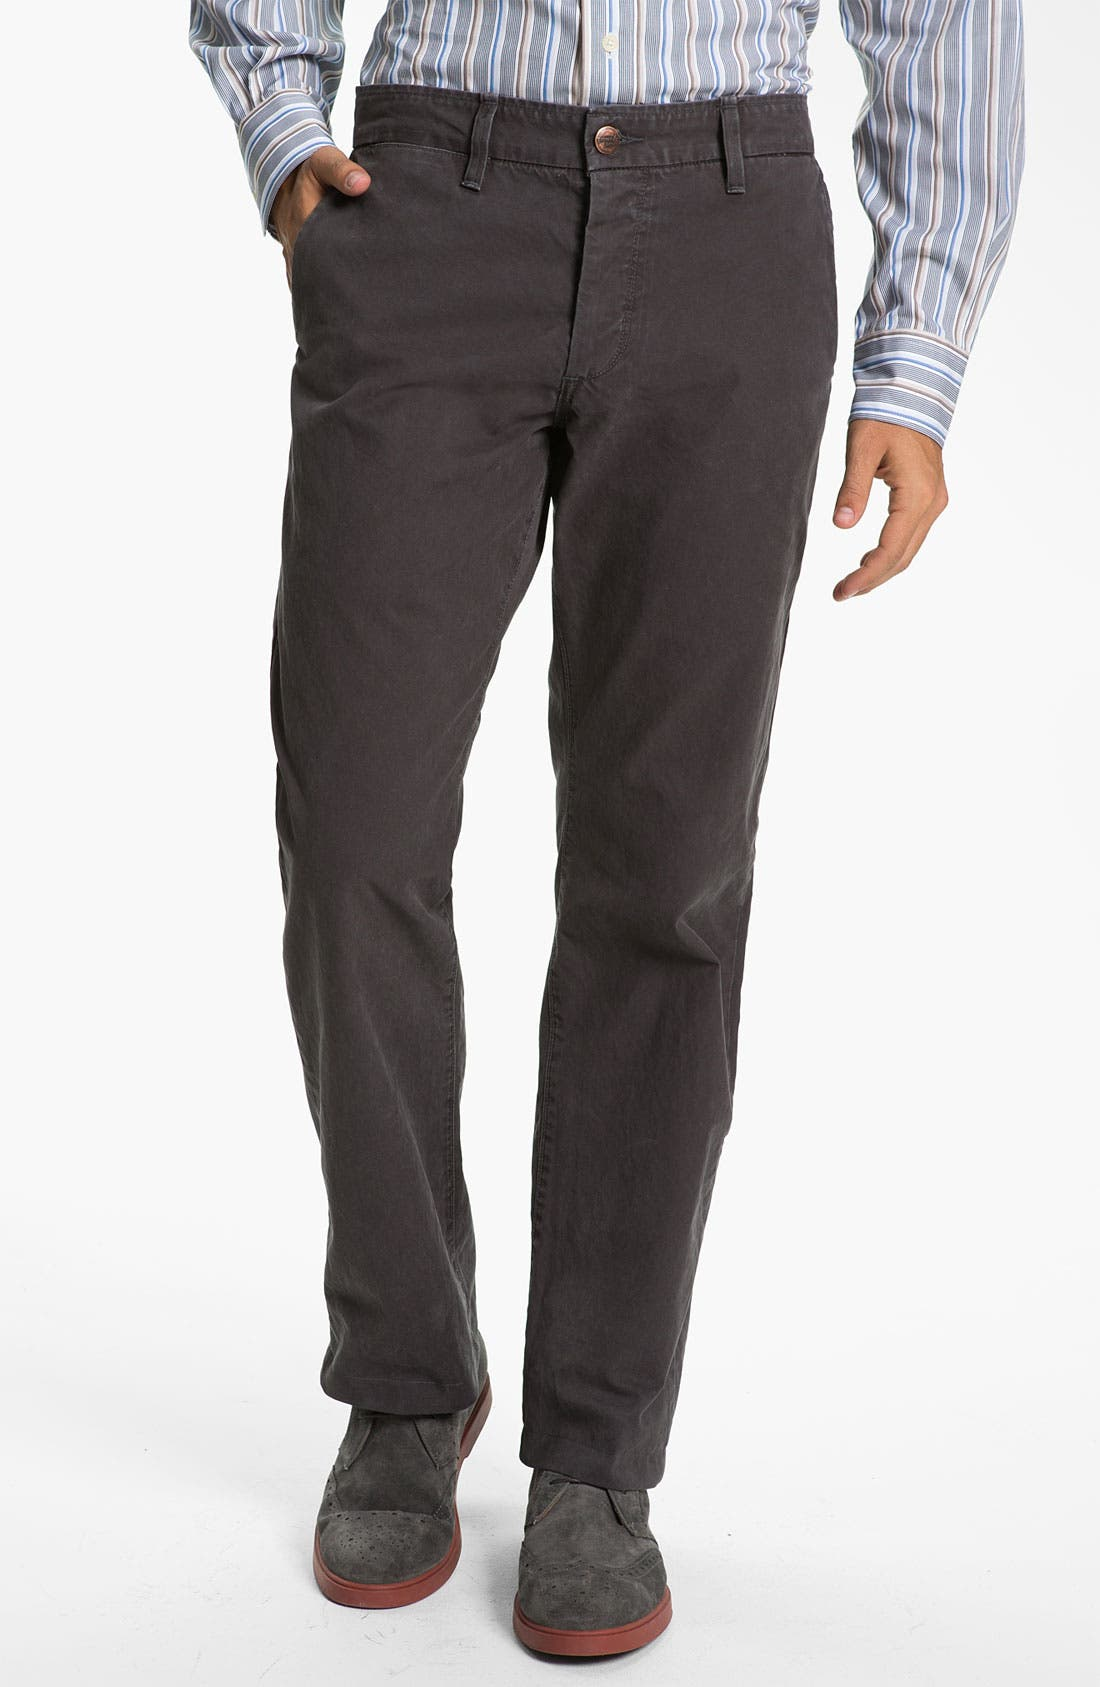 Kroon Wool & Cashmere Sportcoat & Grown & Sewn Twill Pants,                             Main thumbnail 1, color,                             020